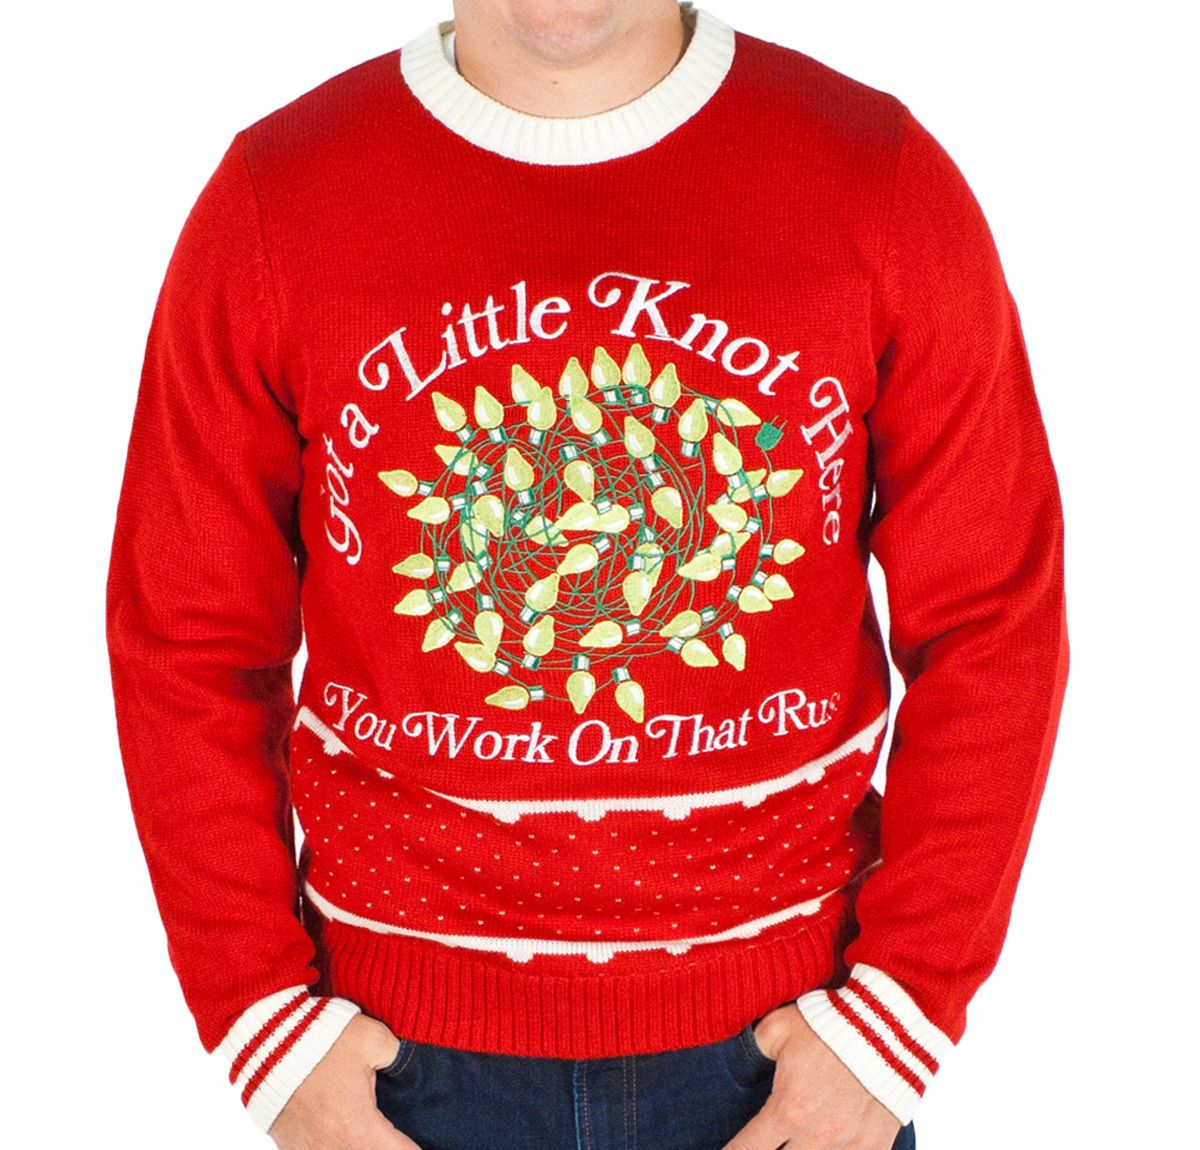 Festified Mens Christmas Vacation Lighted Got A Knot Here Russ Sweater Red Festified Uglychristmassweater Christmasvacation